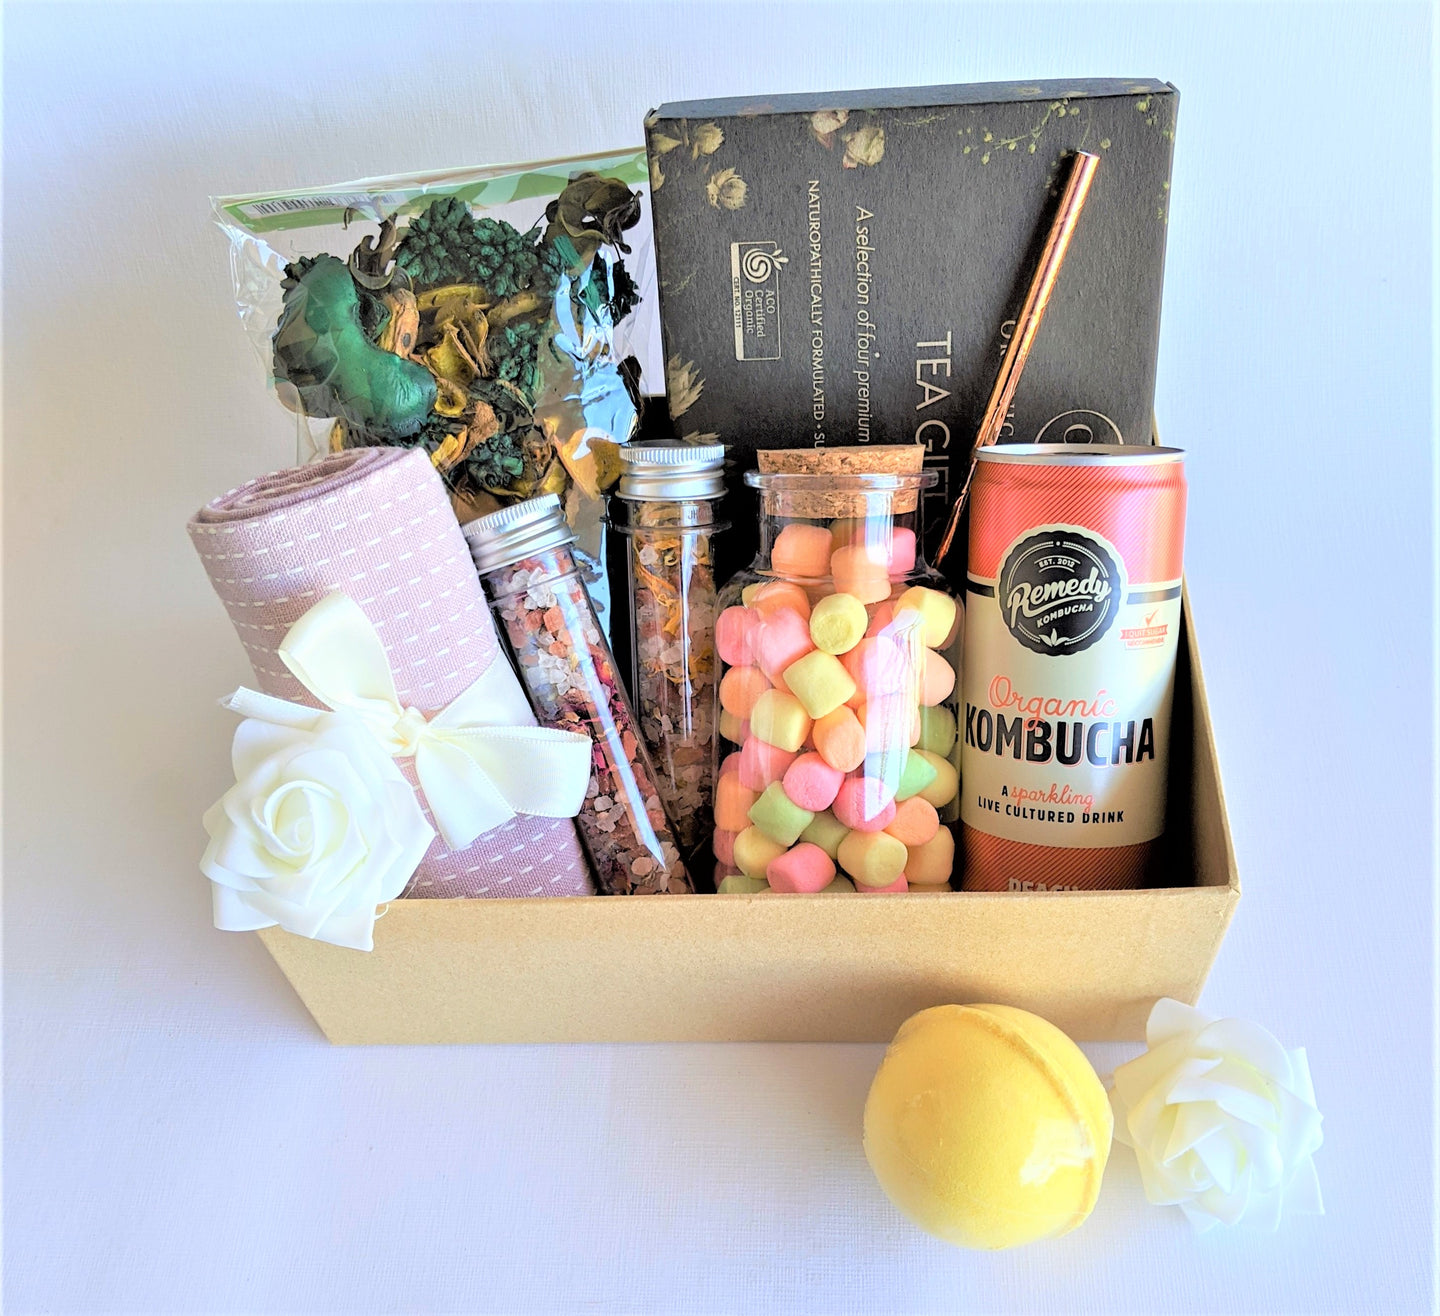 The Swirl Box Mother's day gift hamper with organic tea set, tea towel, Marshmallows, Kombucha, Pot pourri, Bath salts and bath bomb in a gift box